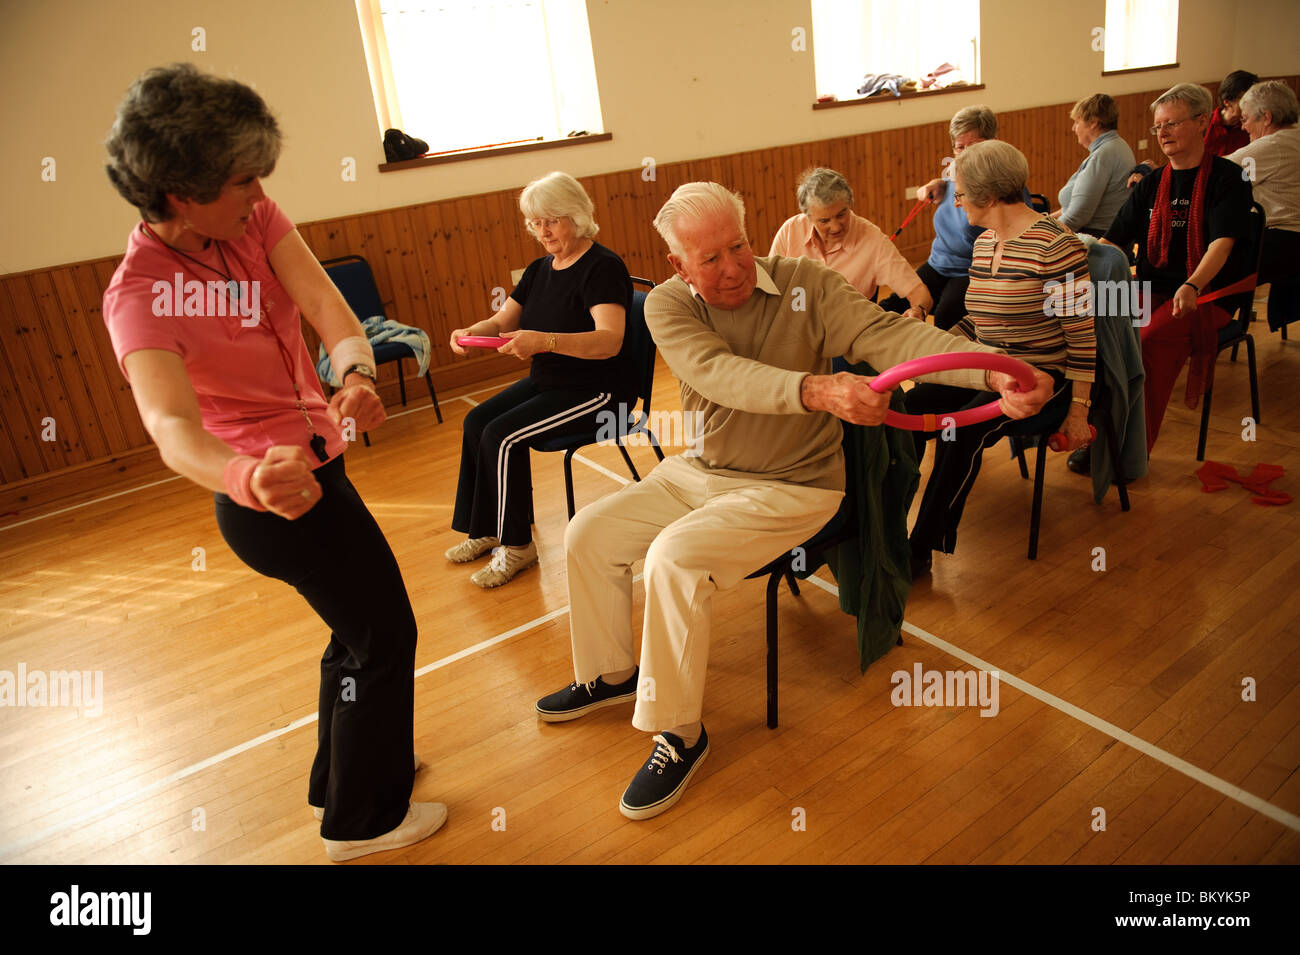 A Group Of Fit Active Senior Citizens Participating In Low Impact